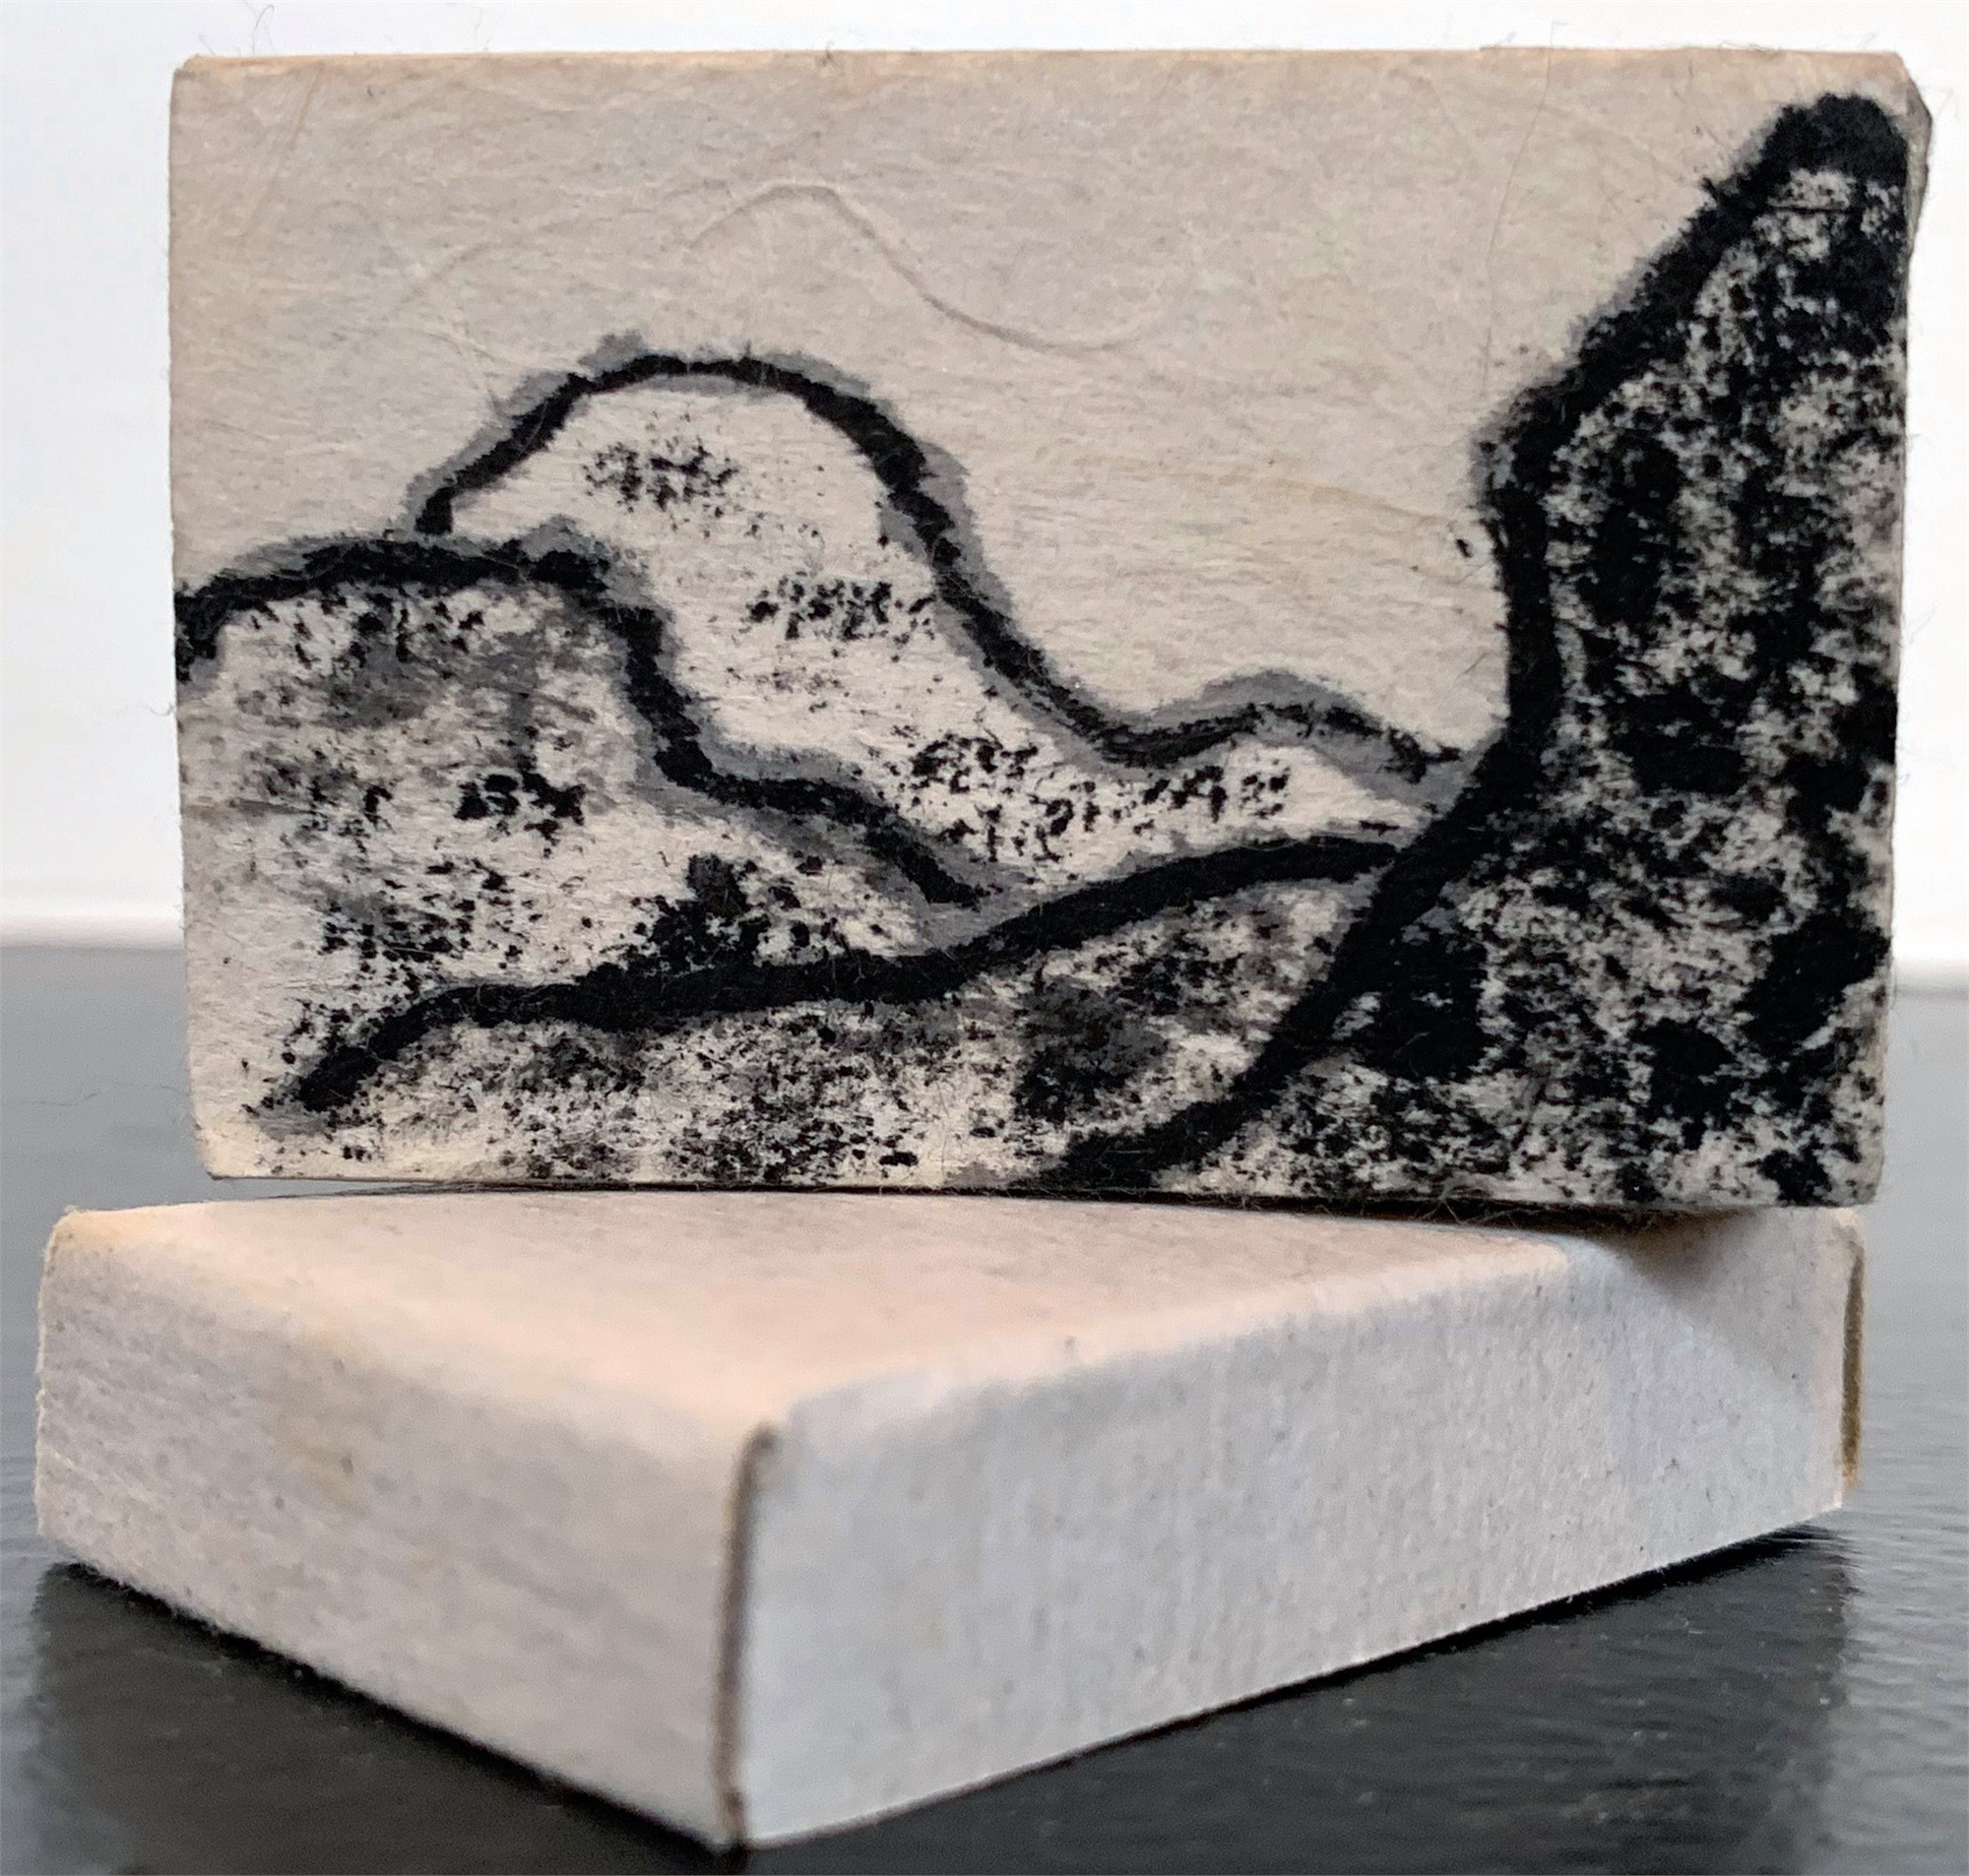 Mountain Visions matchbox 2 by Donald Cole